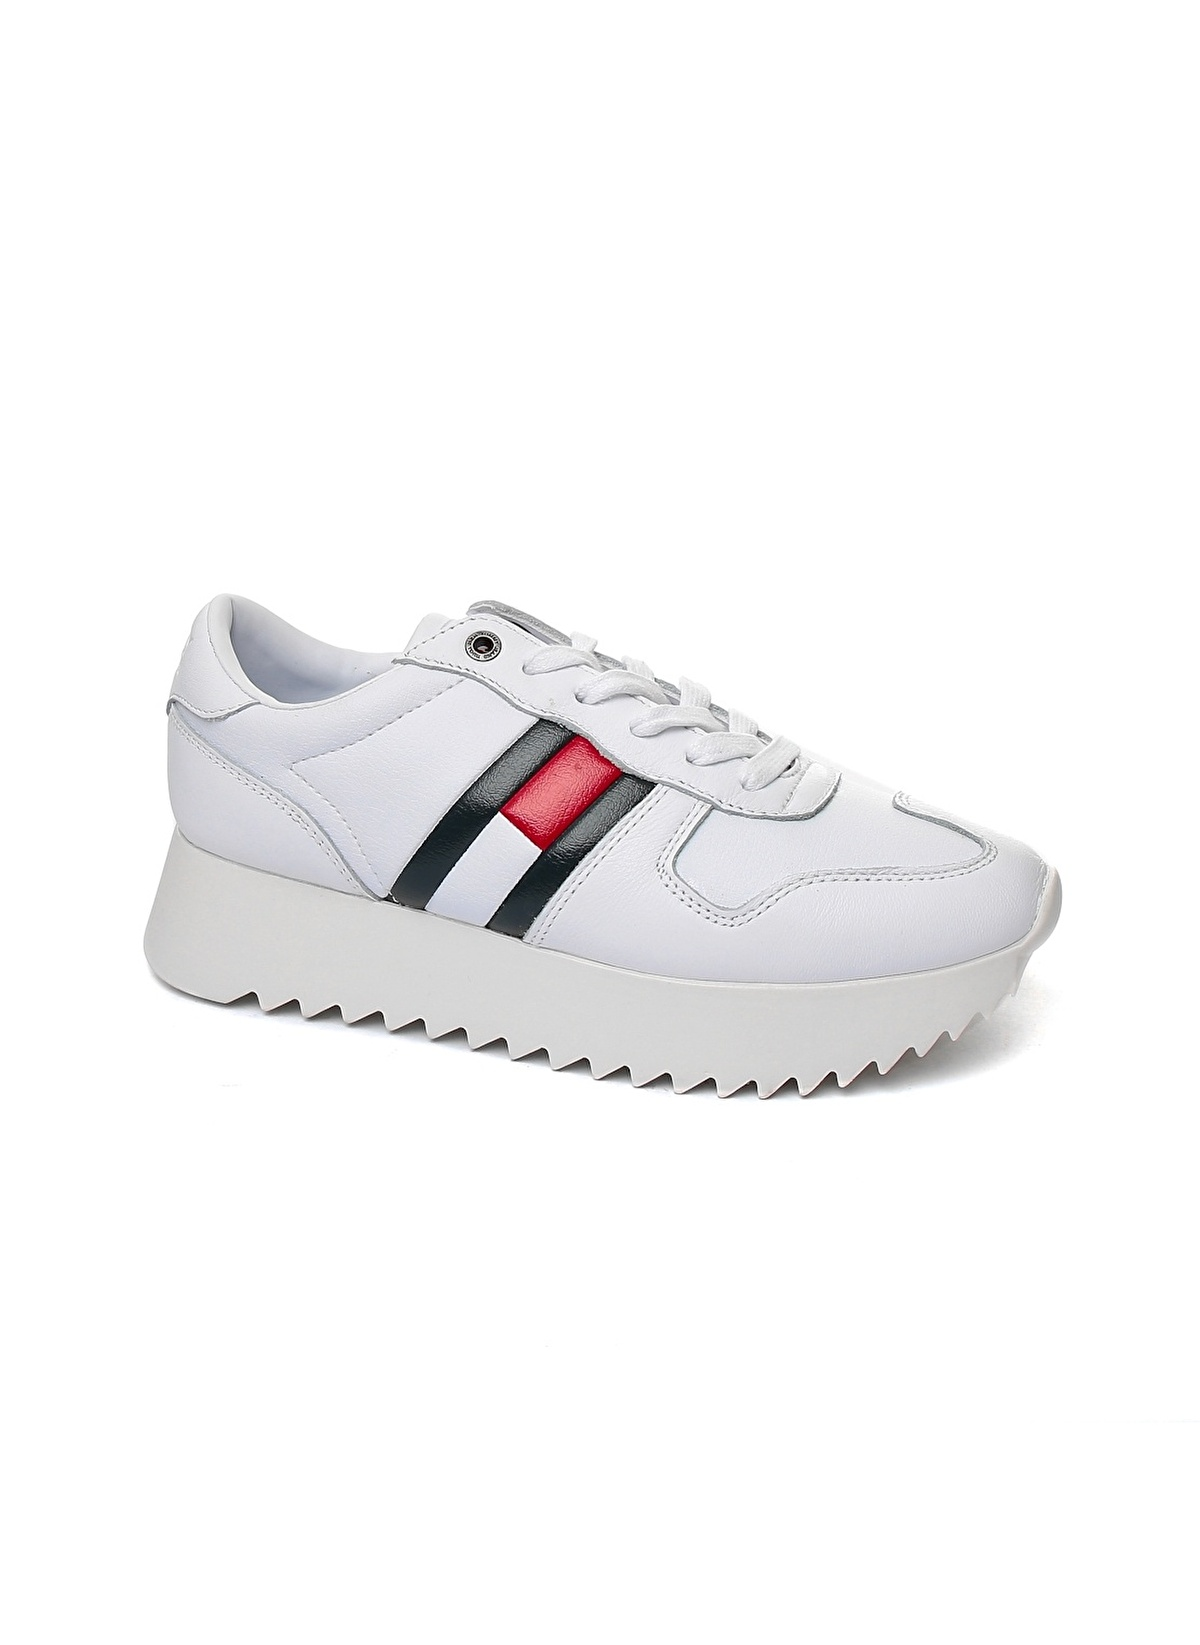 Tommy Hilfiger Sneakers 549.0 Tl